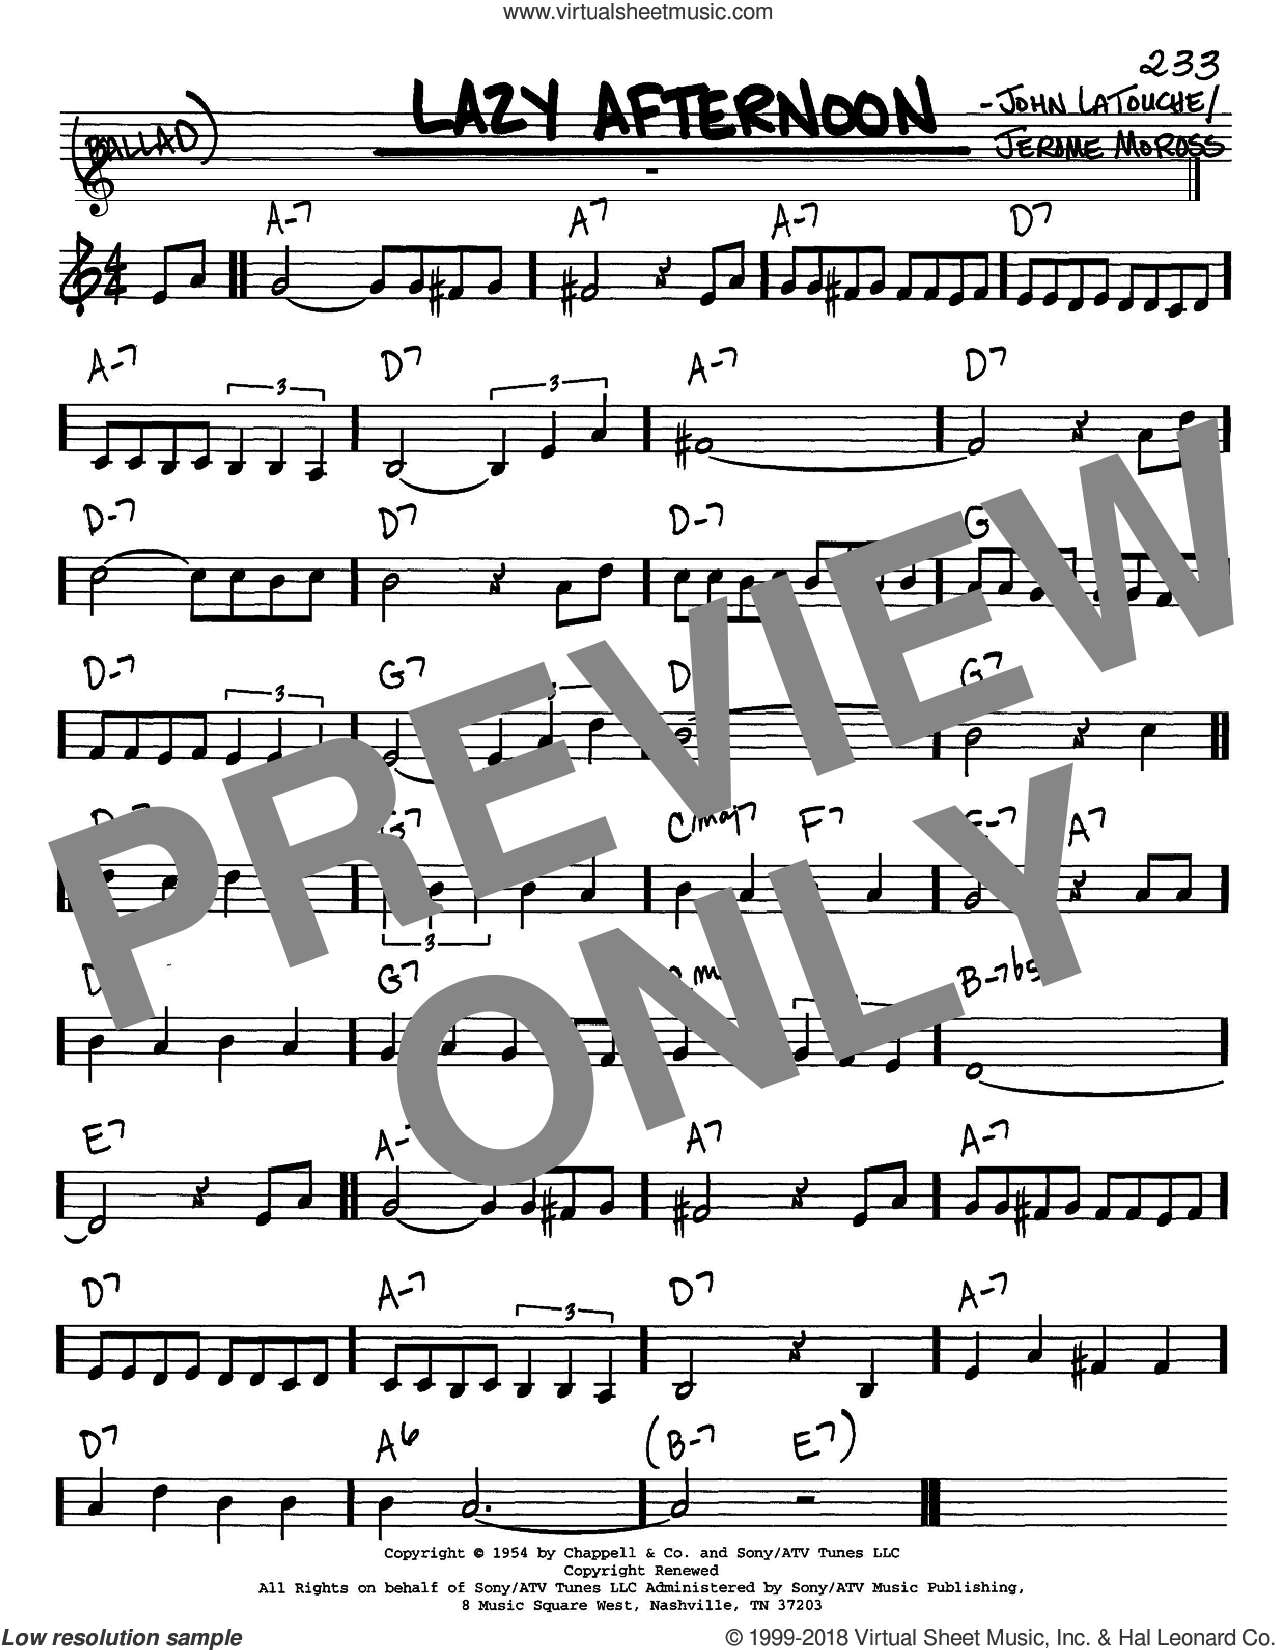 Lazy Afternoon sheet music for voice and other instruments (in C) by Barbra Streisand, Jerome Moross and John Latouche, intermediate. Score Image Preview.